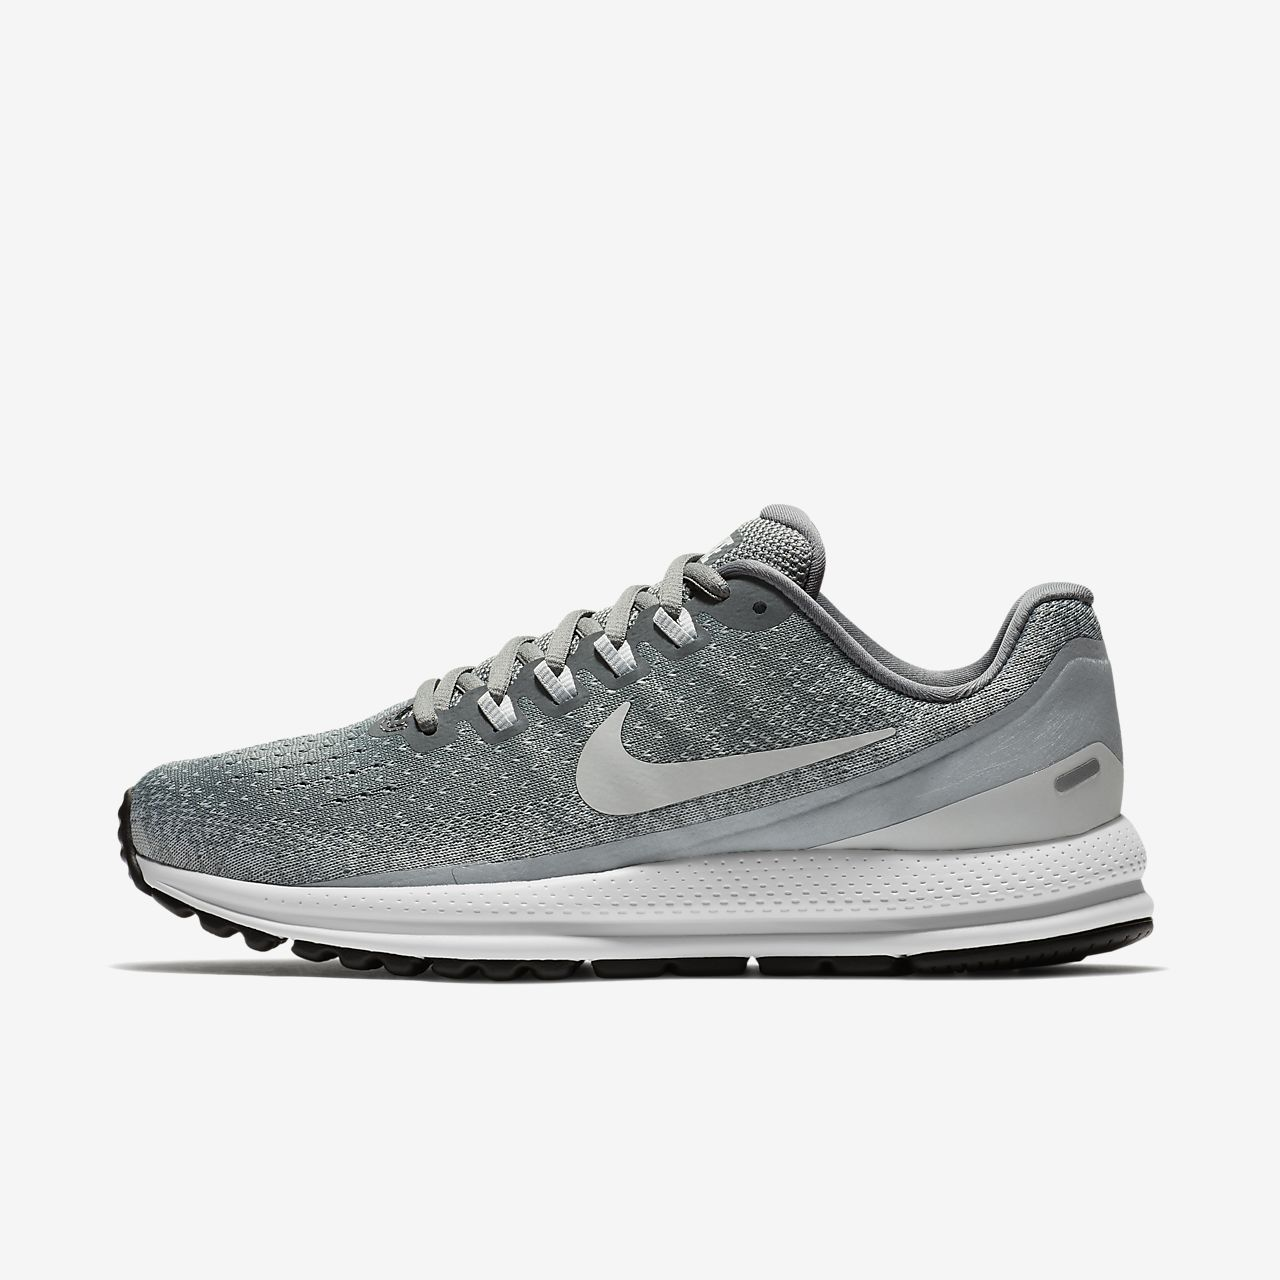 new style 2239c 40523 ... Nike Air Zoom Vomero 13 Zapatillas de running - Mujer